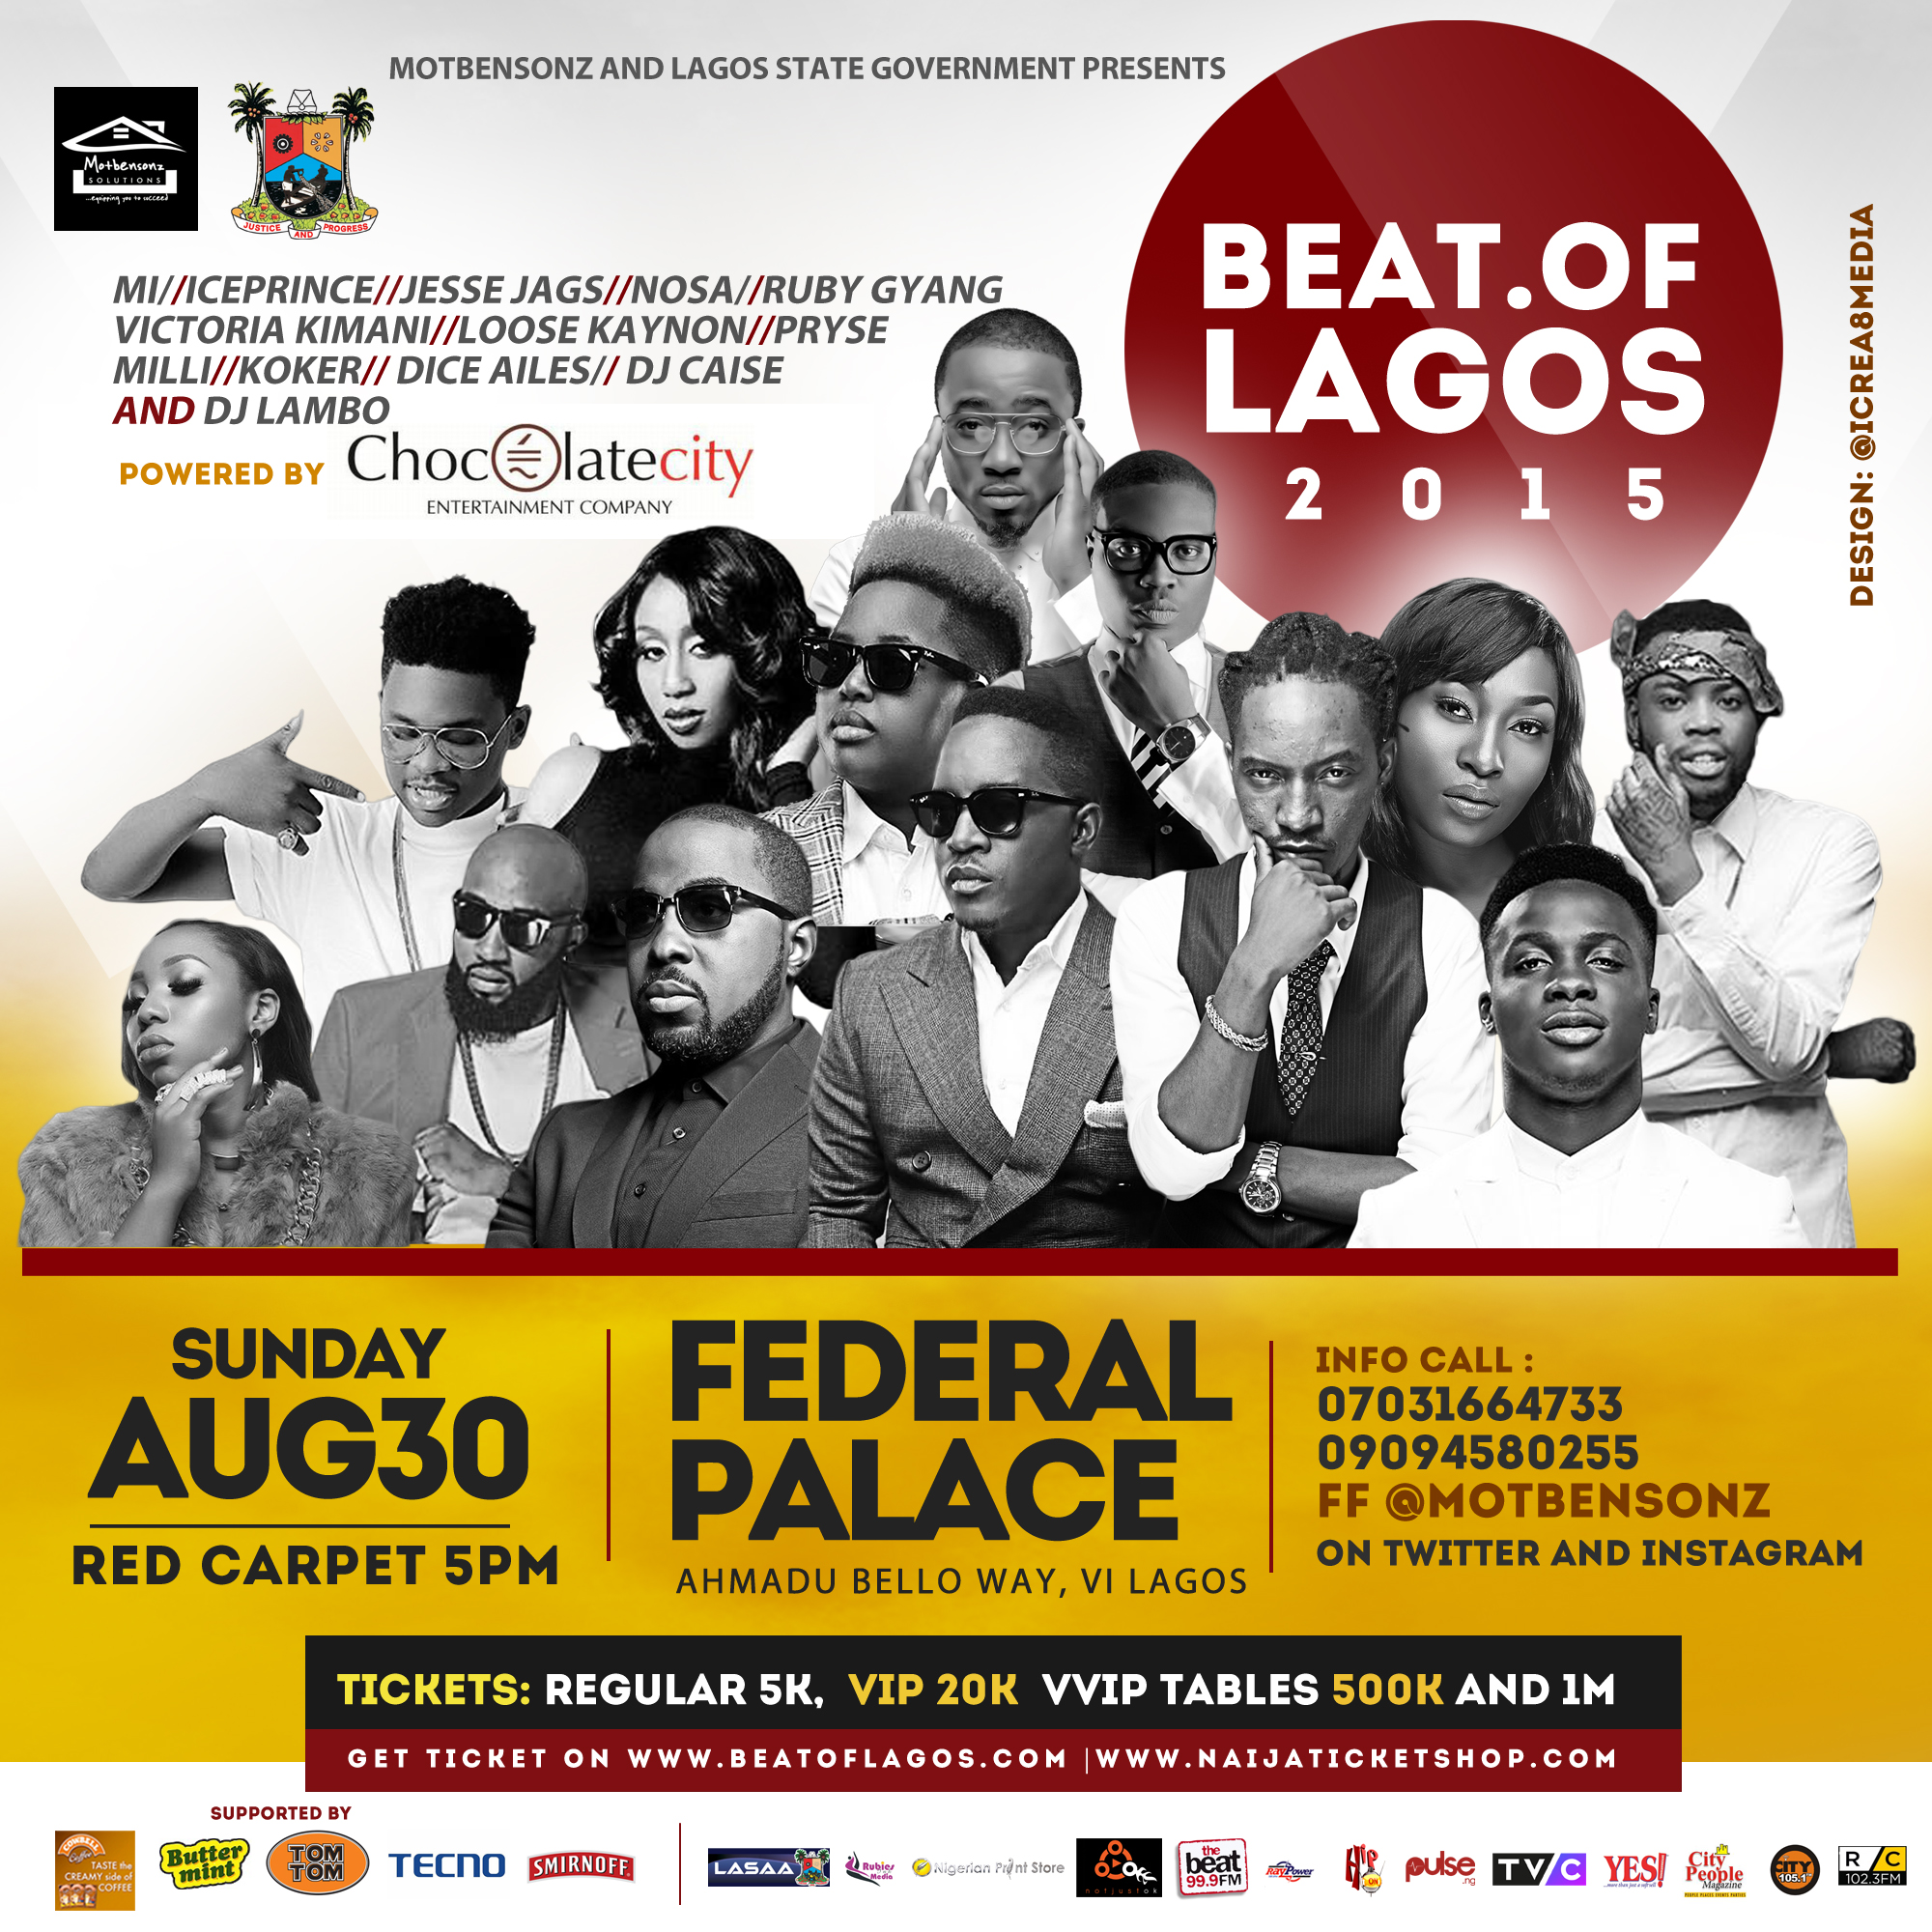 The Beat Of Lagos 2015